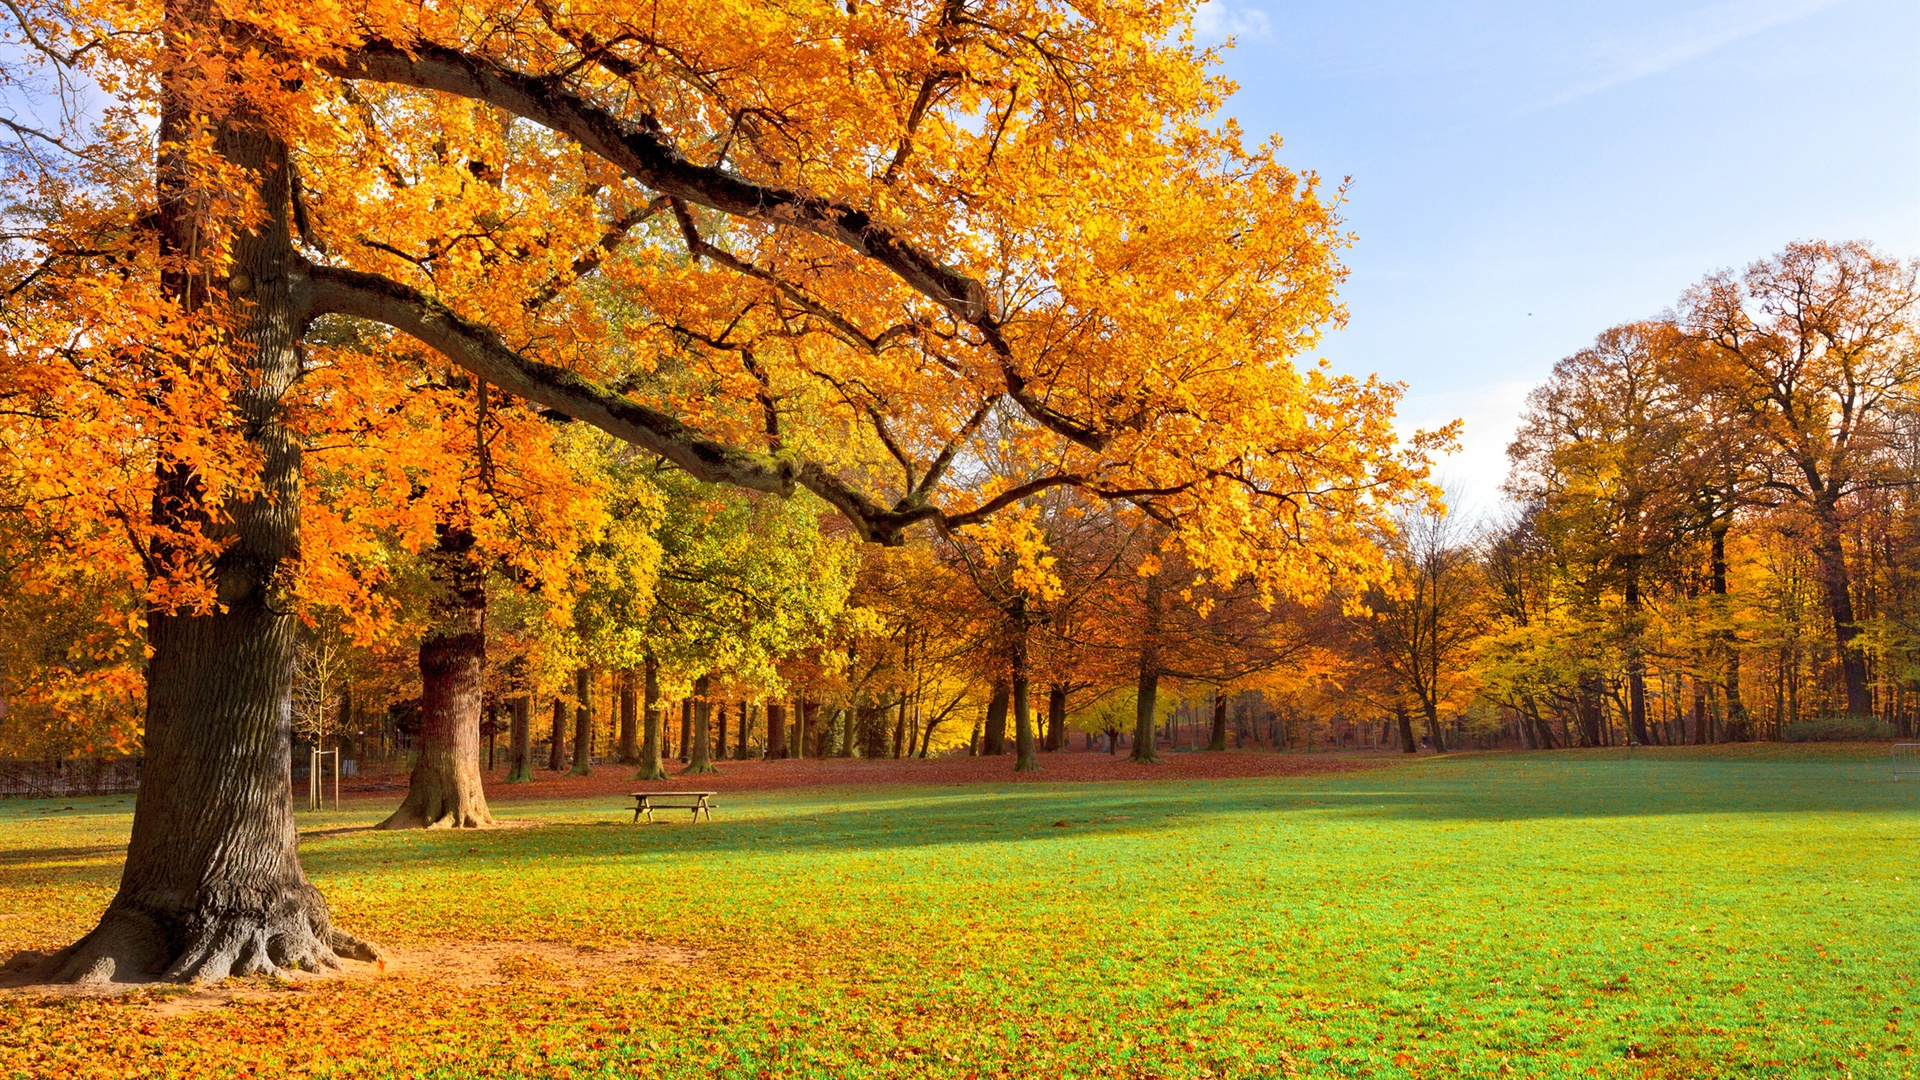 10 Latest Fall Country Backgrounds For Computer Full Hd: Natur Landschaft, Herbst, Park, Bäume, Gras, Sonne